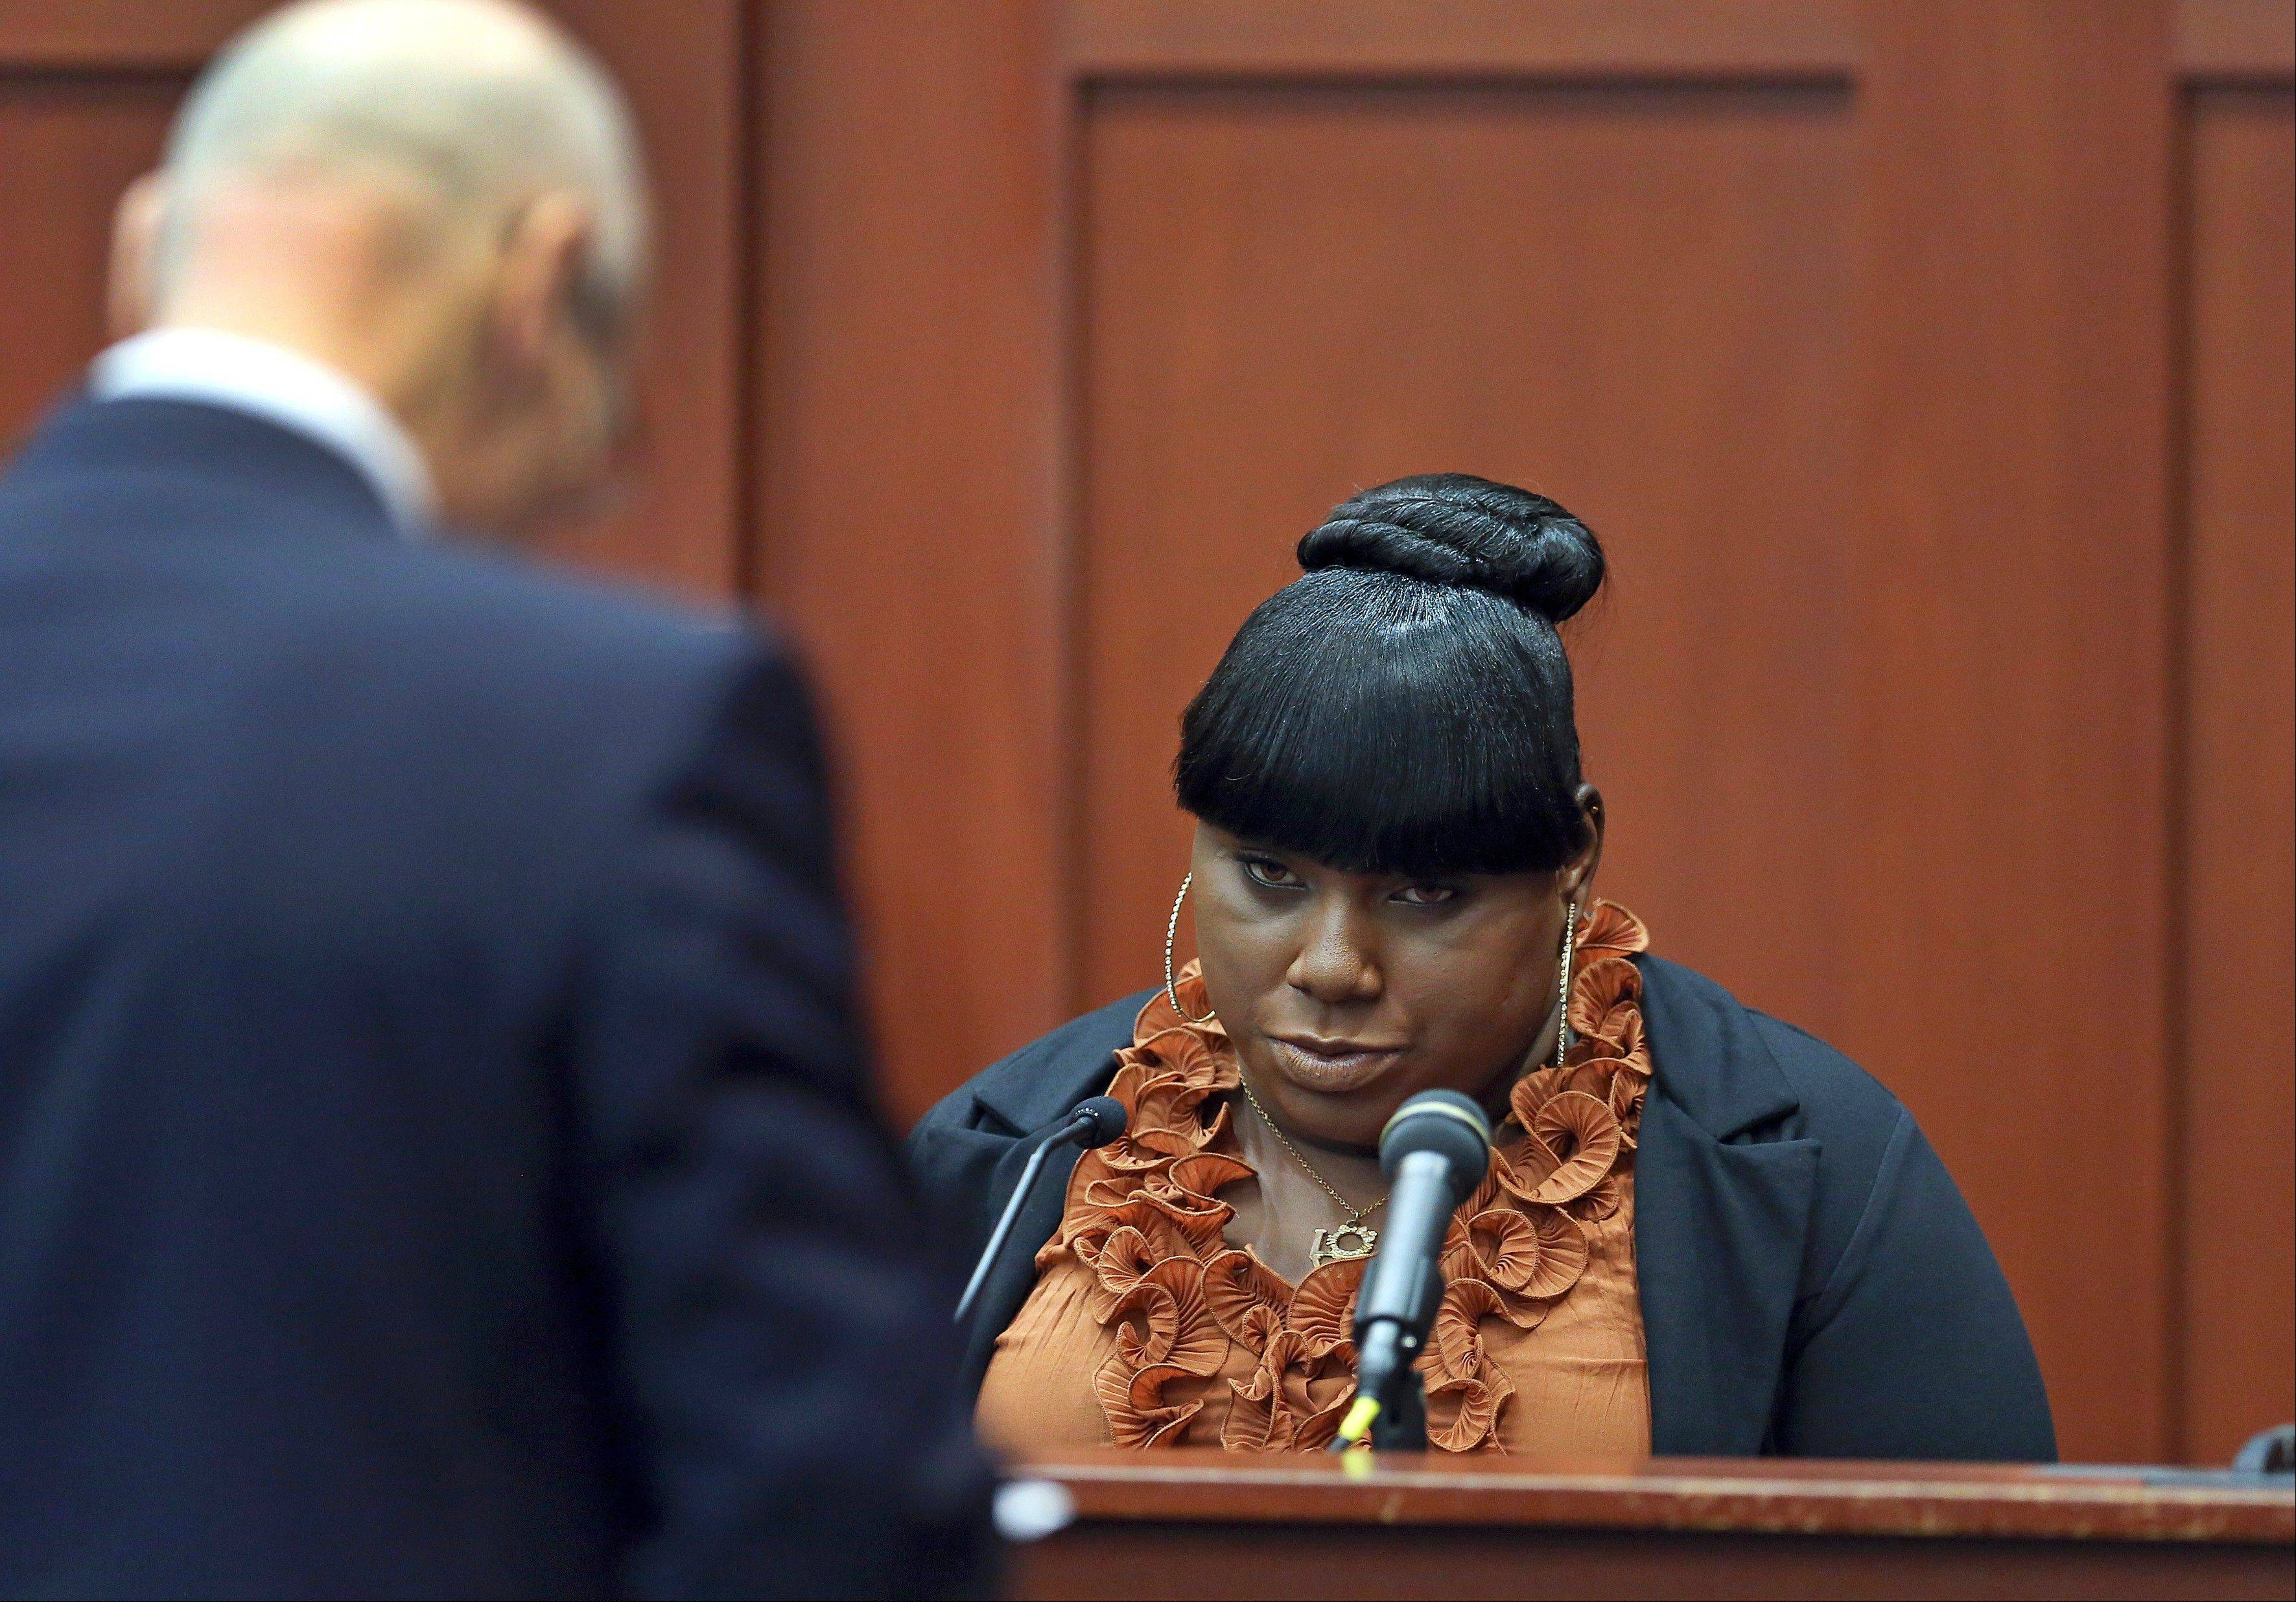 Witness Rachel Jeantel, right, continues her testimony to defense attorney Don West in George Zimmerman's trial in Seminole circuit court in Sanford, Fla. Thursday, June 27, 2013. Zimmerman has been charged with second-degree murder for the 2012 shooting death of Trayvon Martin.